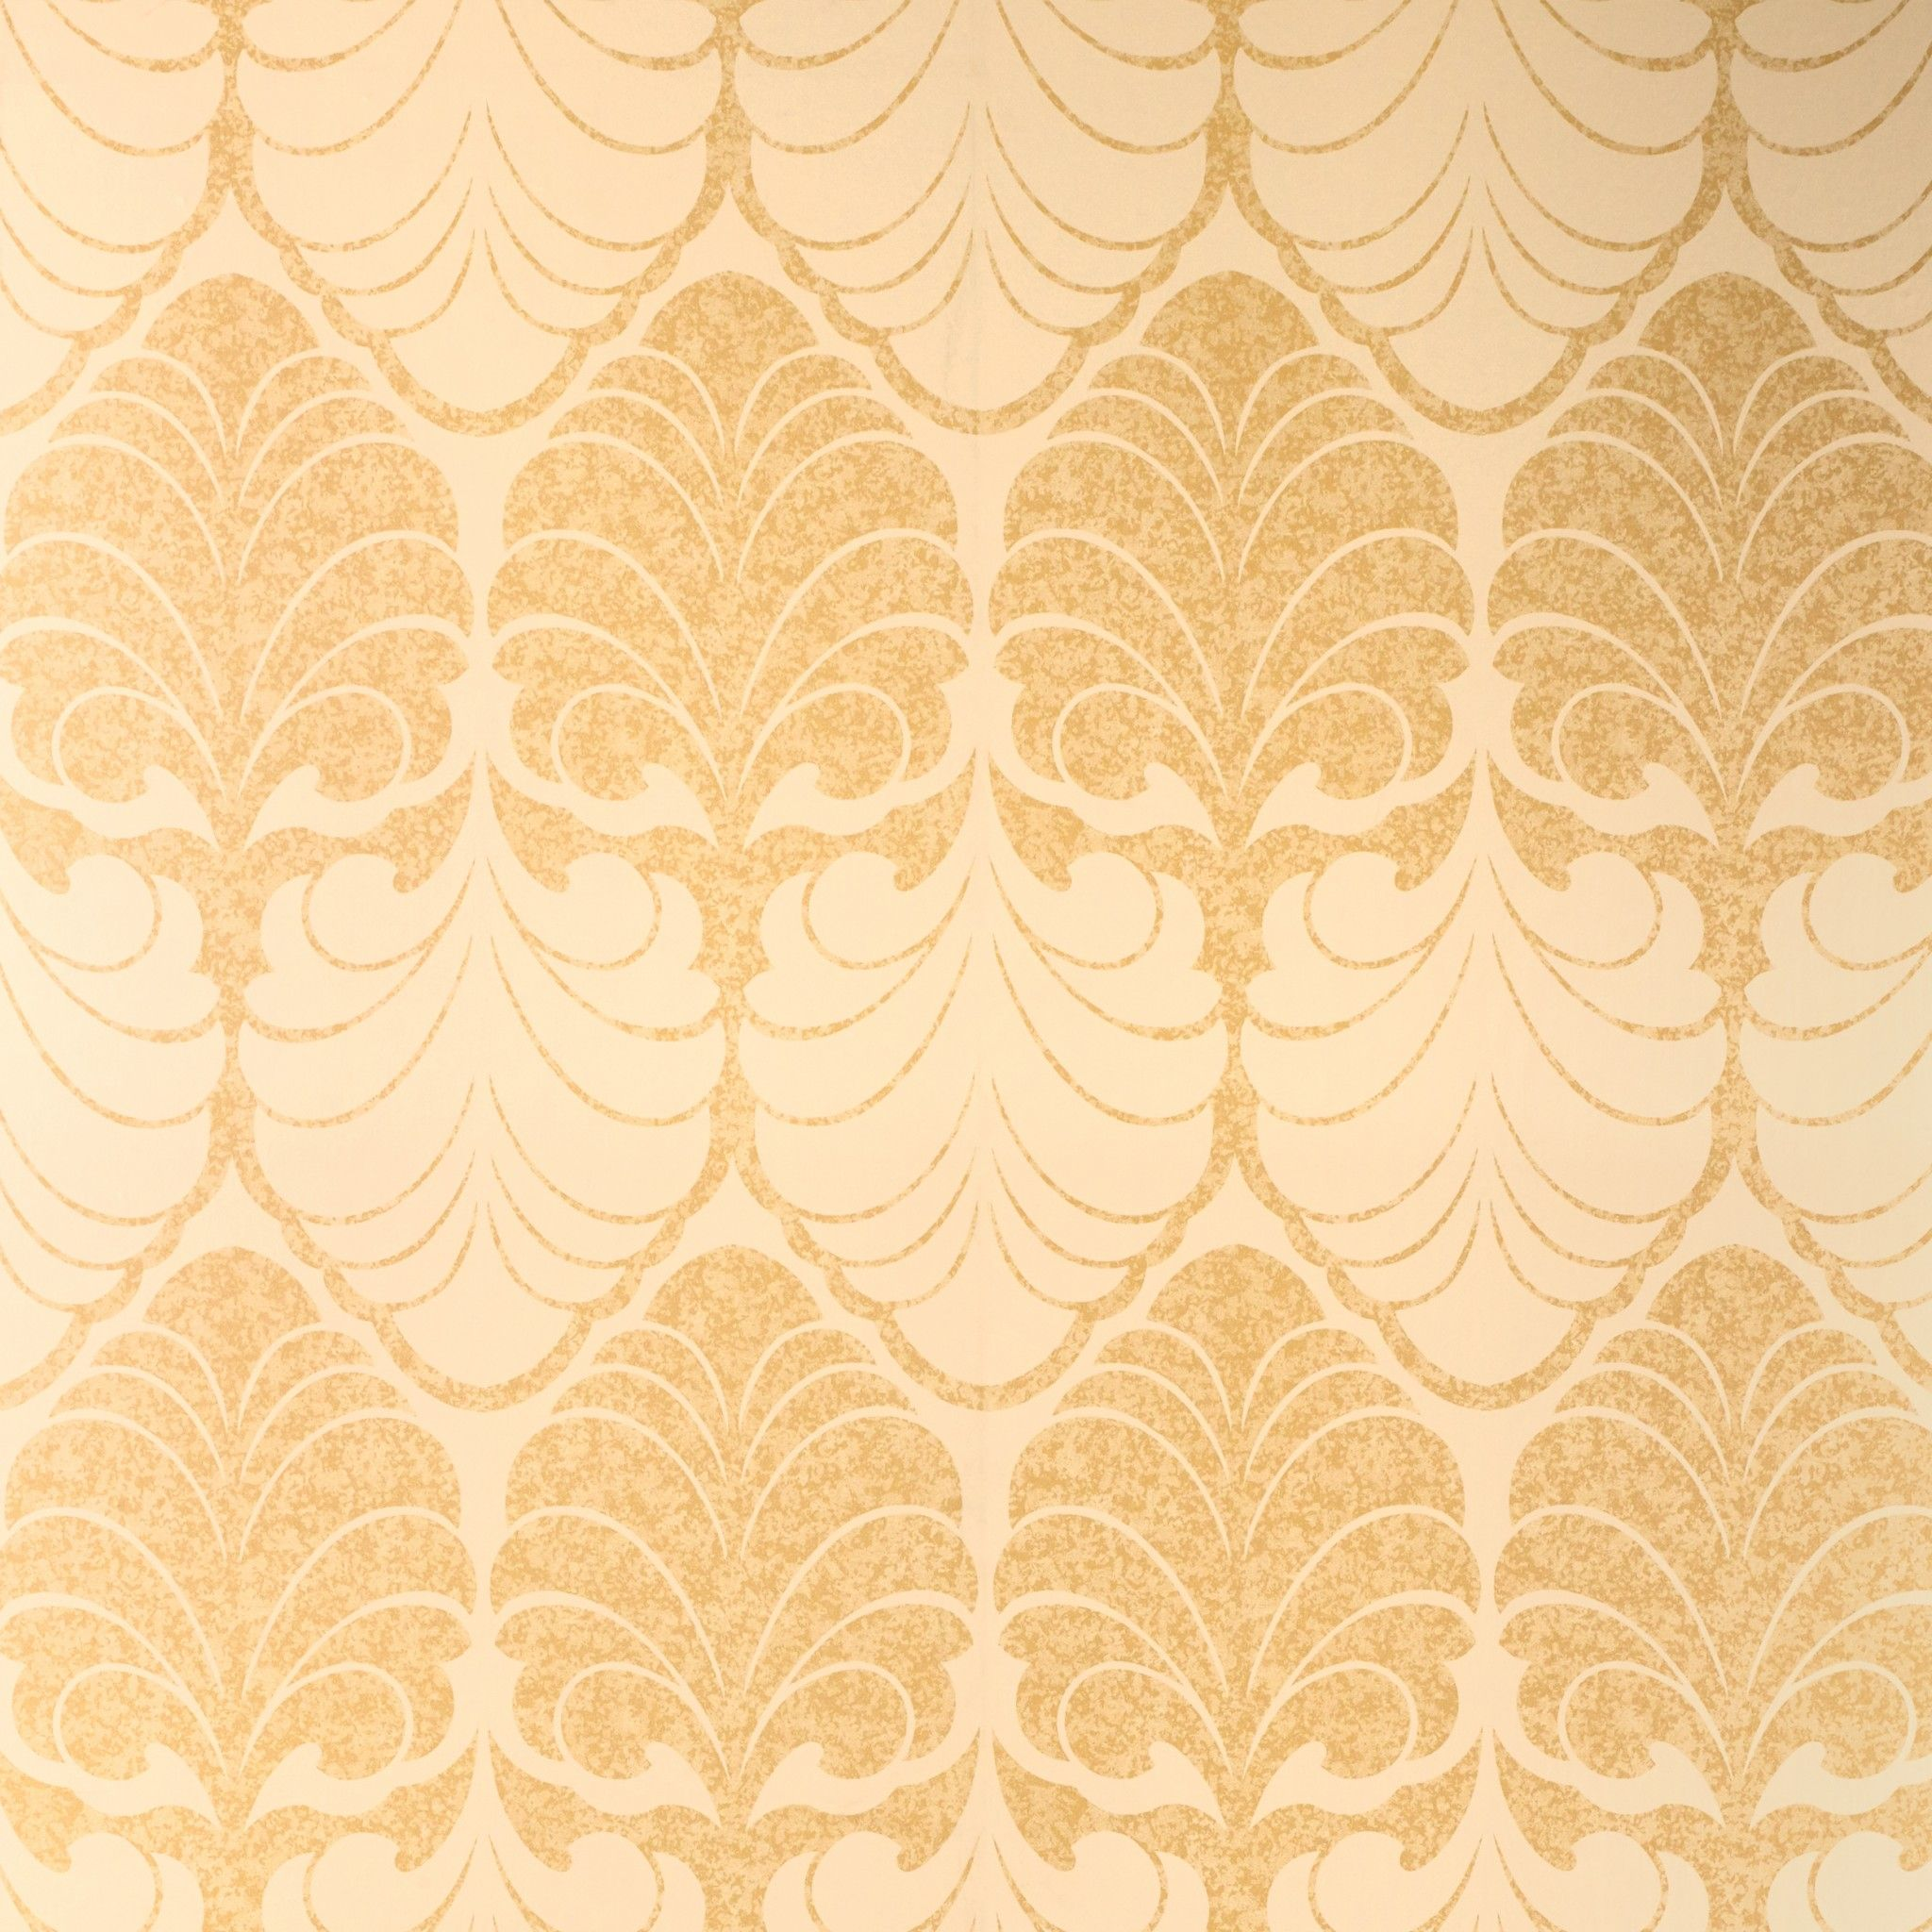 Alexander Gold Tap to see more vintage pattern wallpapers